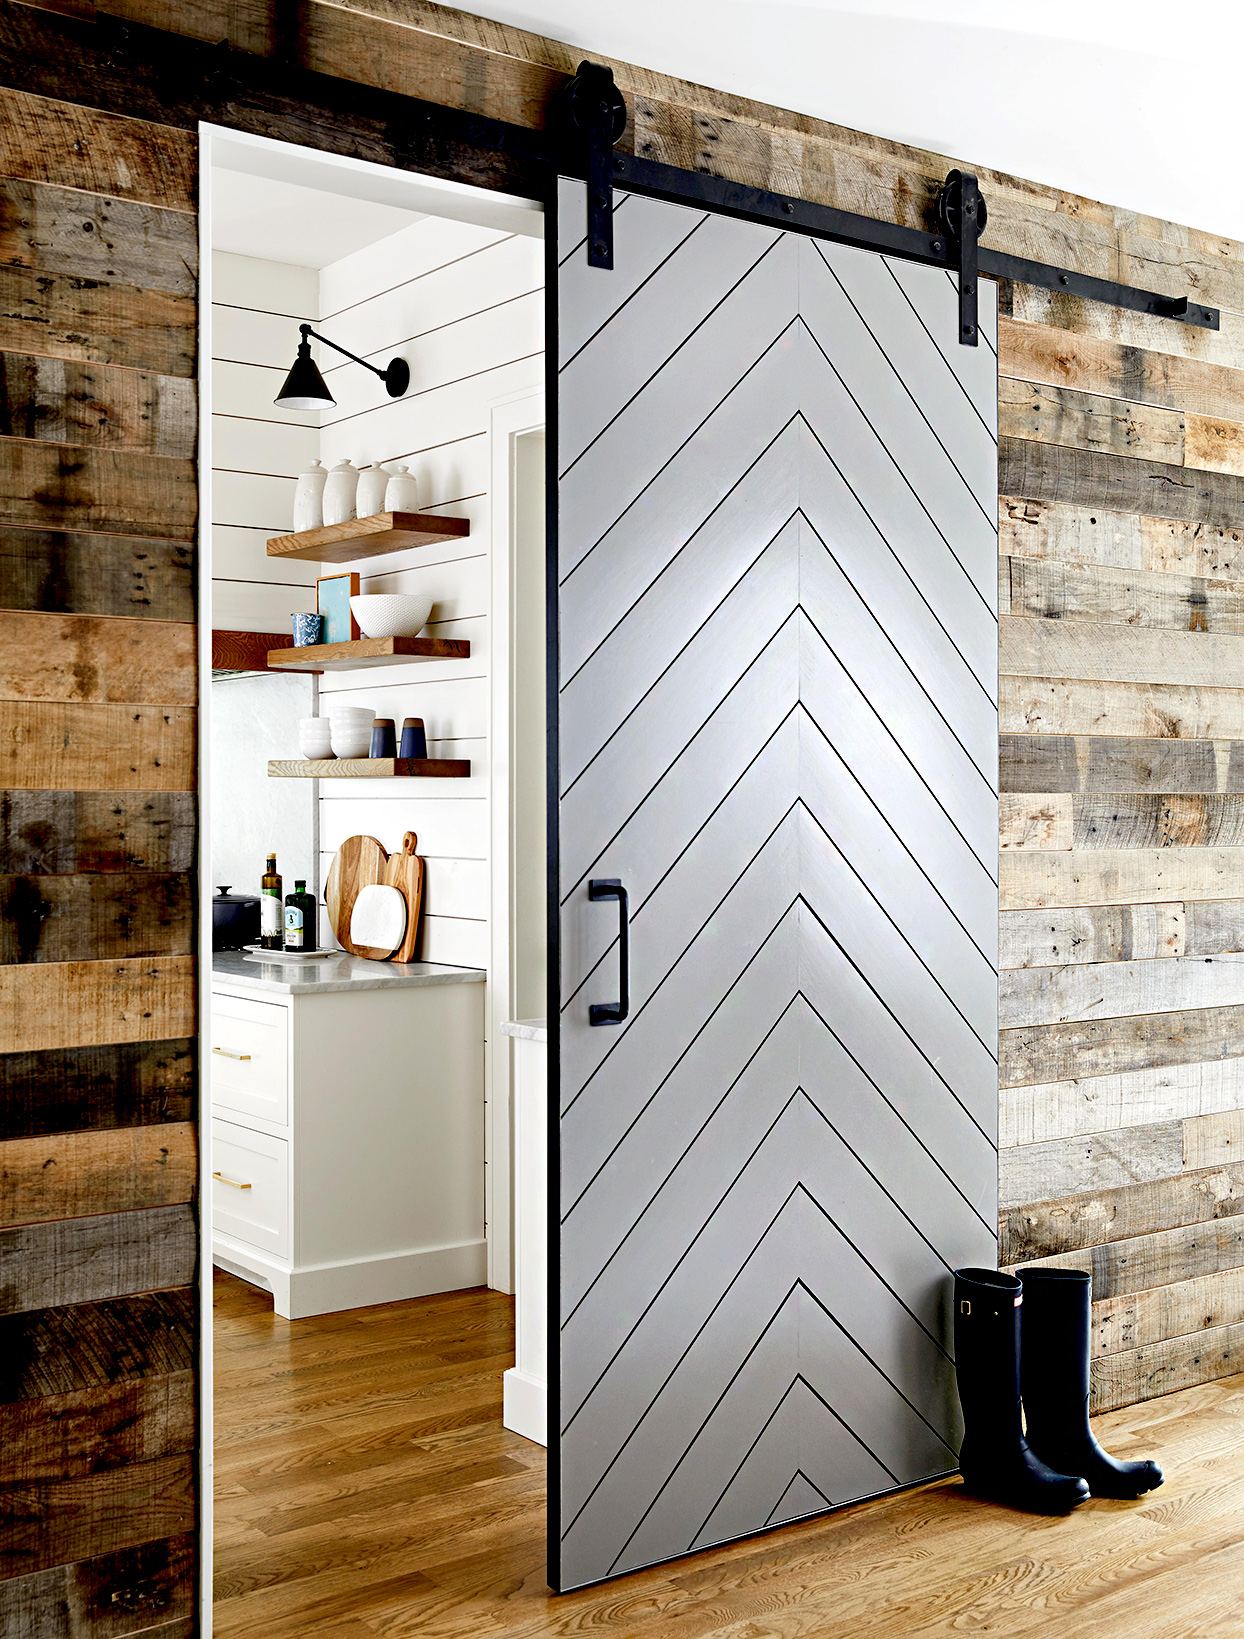 Sliding door with geometric pattern and boots